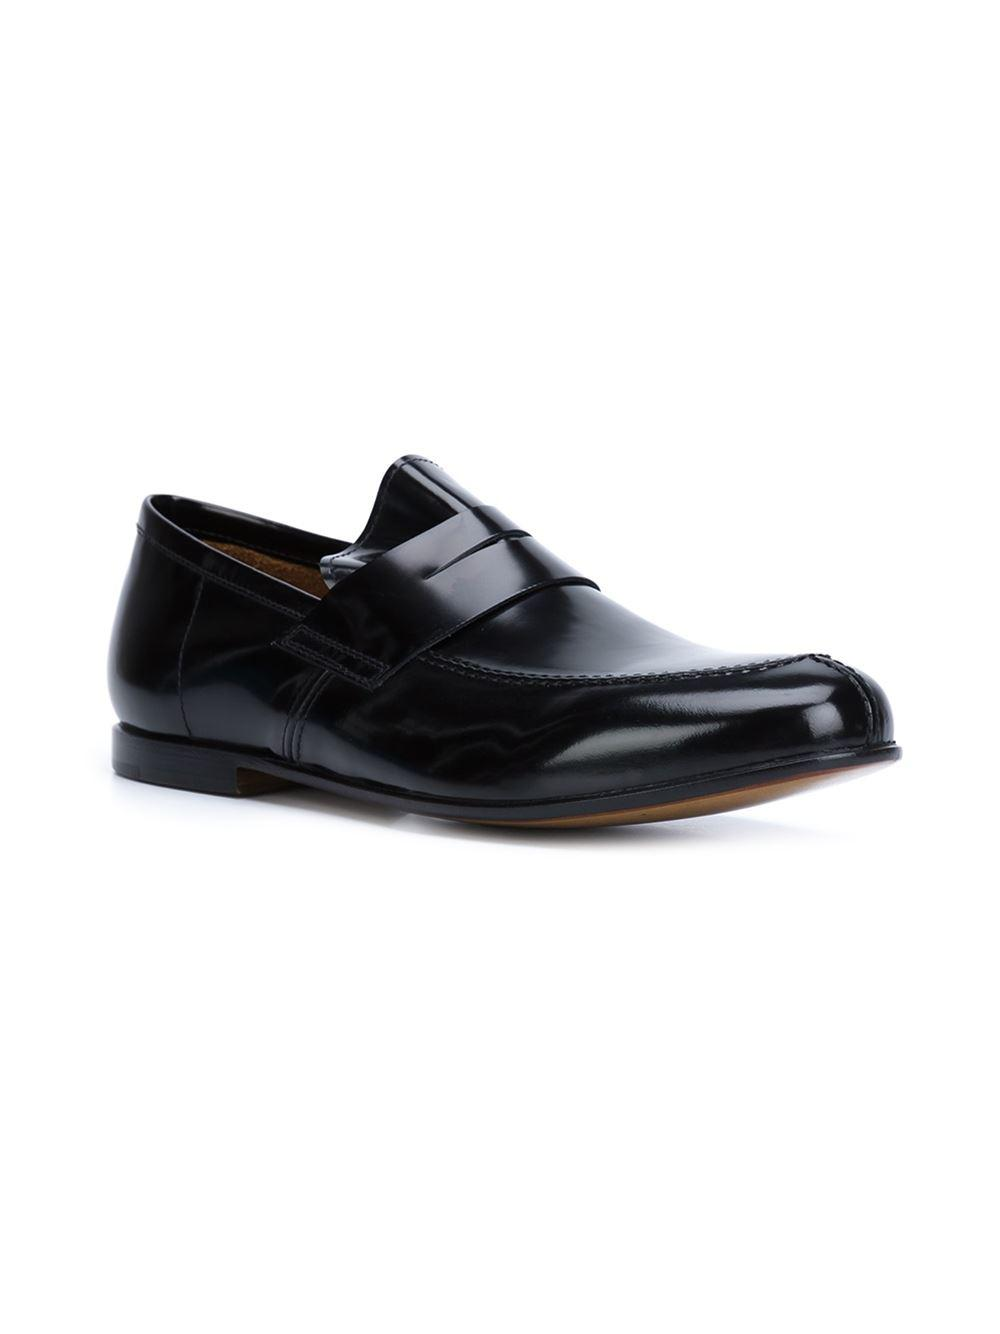 Lyst - Armando Cabral  church  Penny Loafers in Black for Men b404c47aa6a